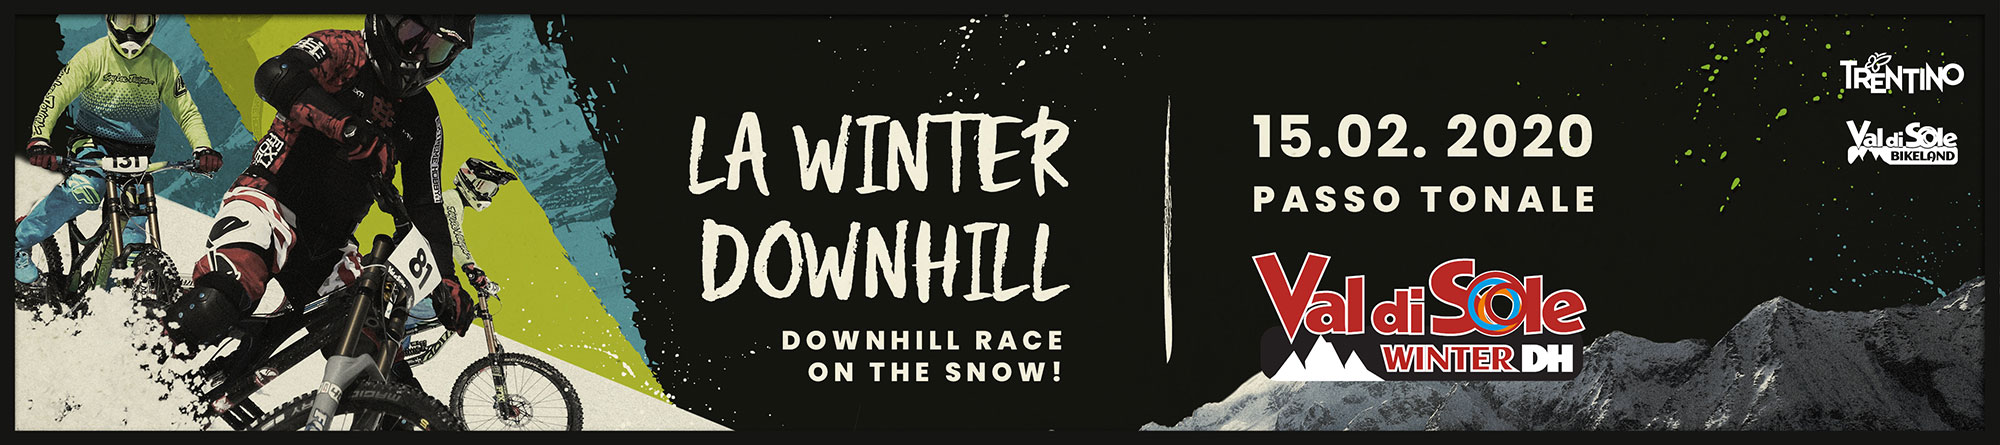 LA Winter Downhill 2020